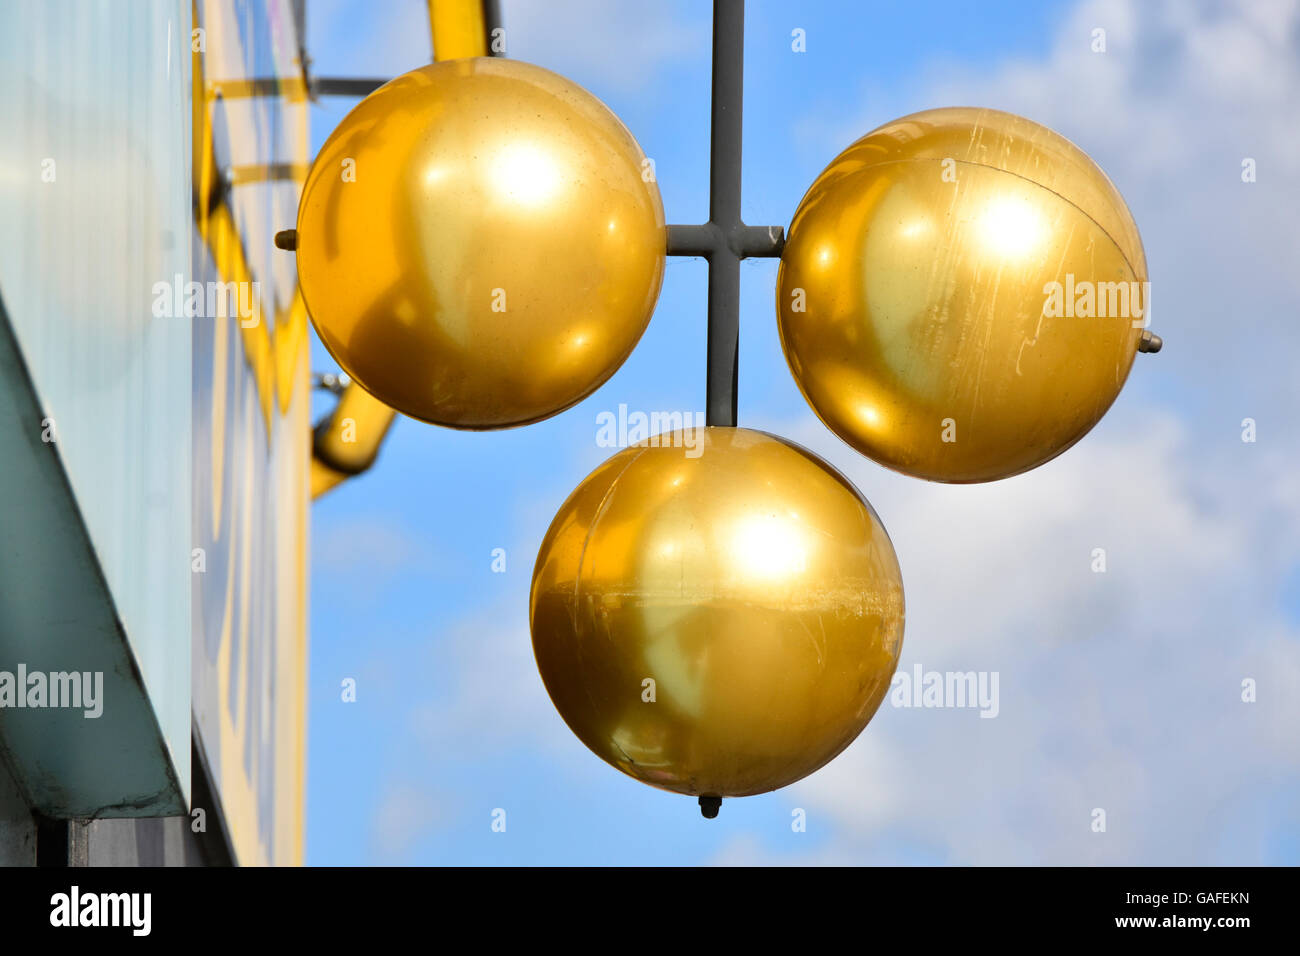 Pawn shop sign of three gold balls above Pawnbroker premises Pawn Barking East London England UK in London Borough - Stock Image